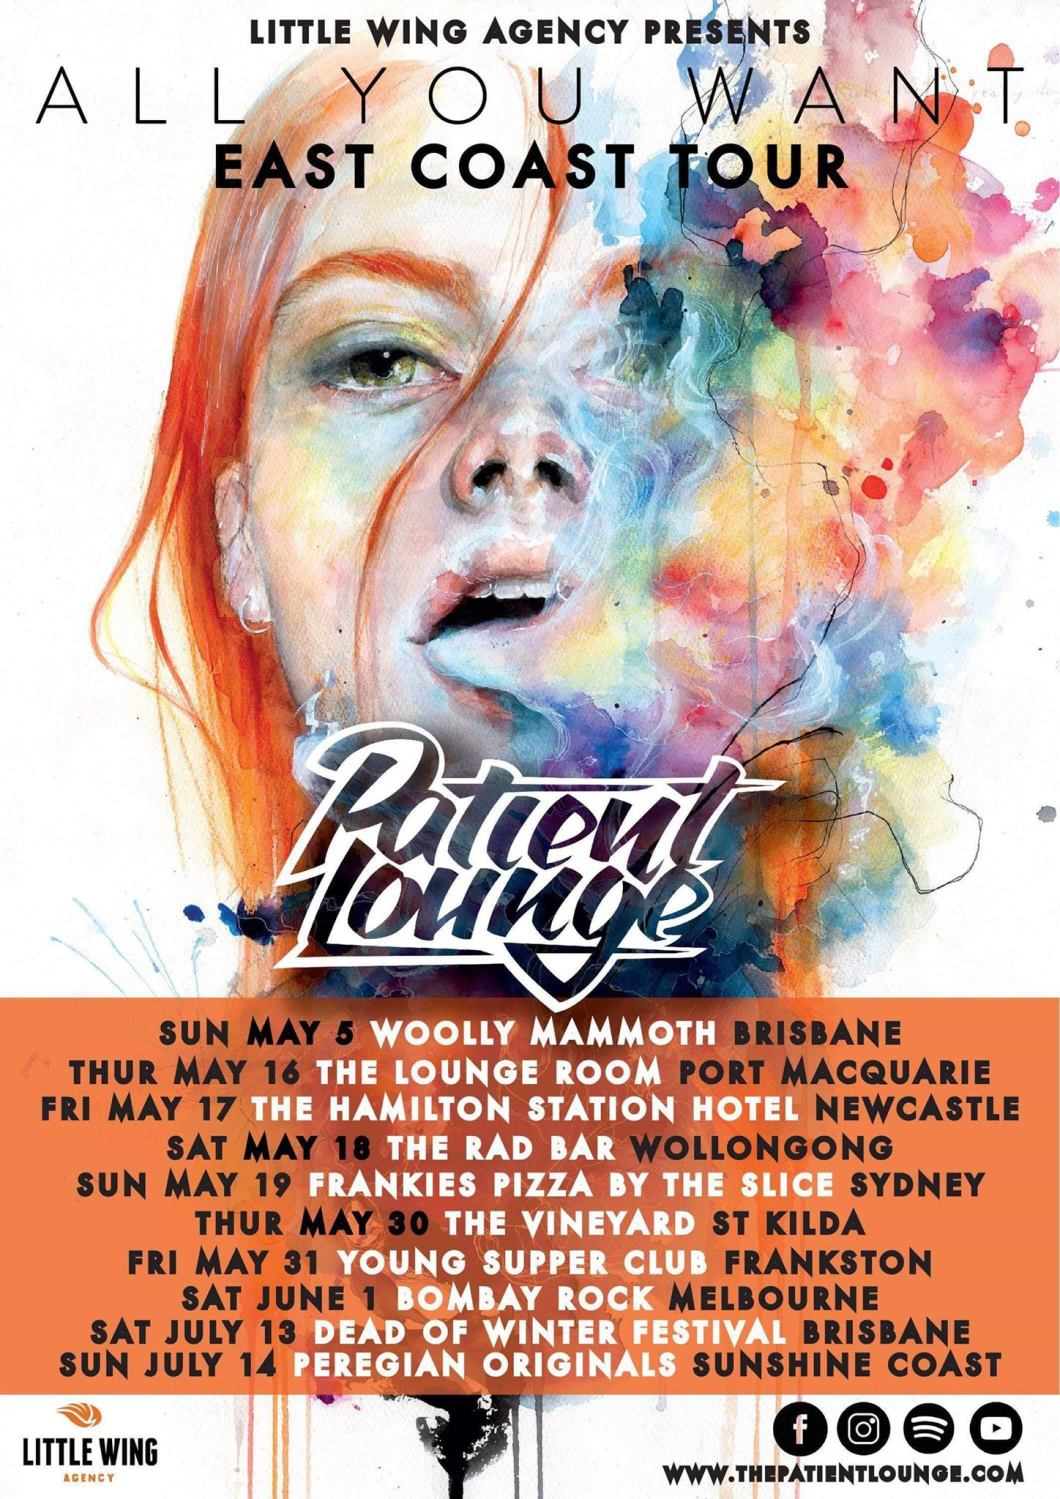 Patient Lounge - 'All You Want' Tour - Poster.jpg